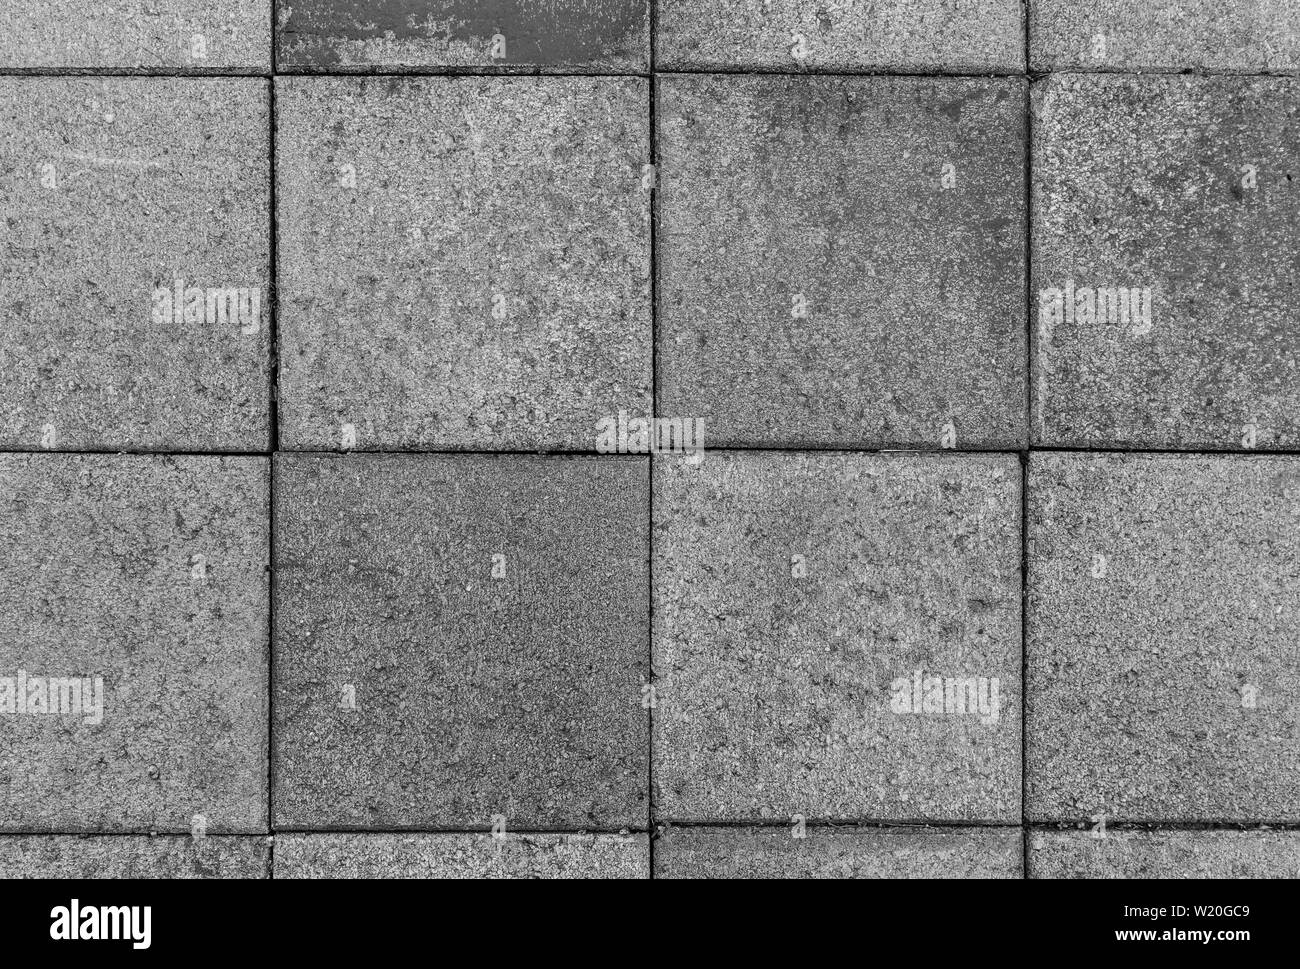 Close-up of a bit dirty and weathered square paving stones or blocks outdoors viewed from above in black & white. High resolution textured background. Stock Photo